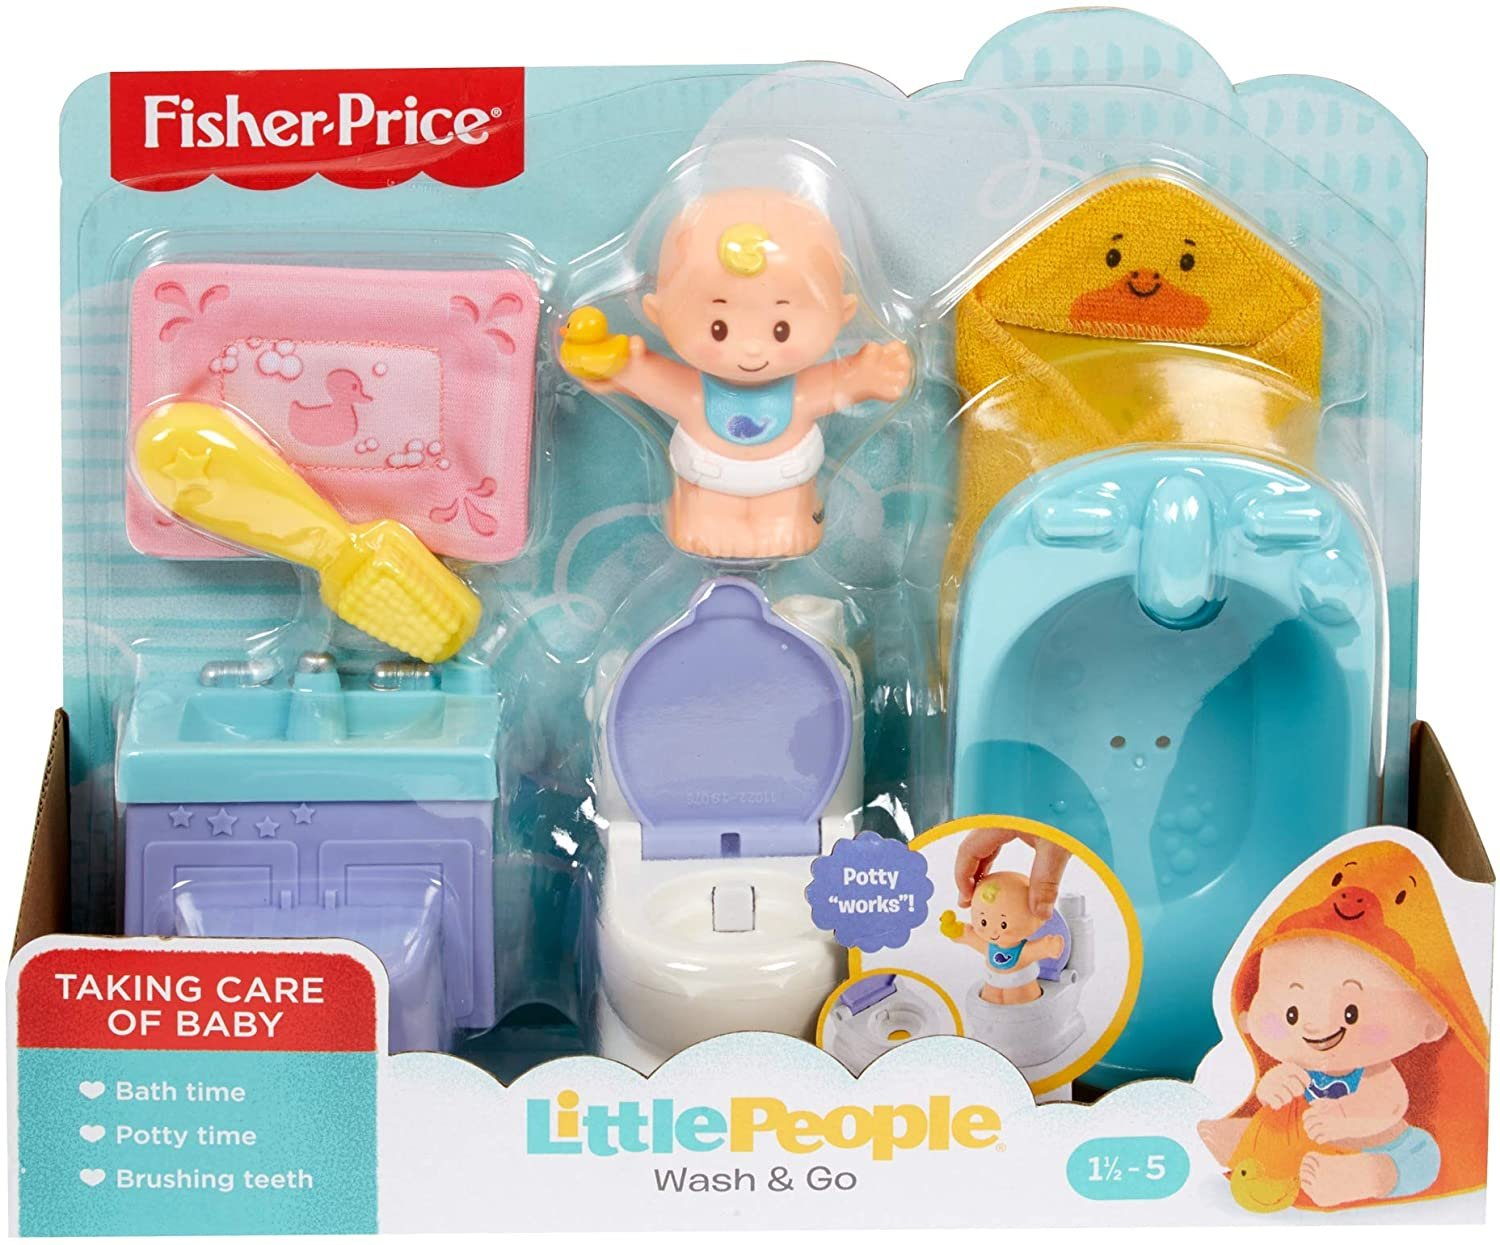 Fisher Price Little People Wash & Go Set -